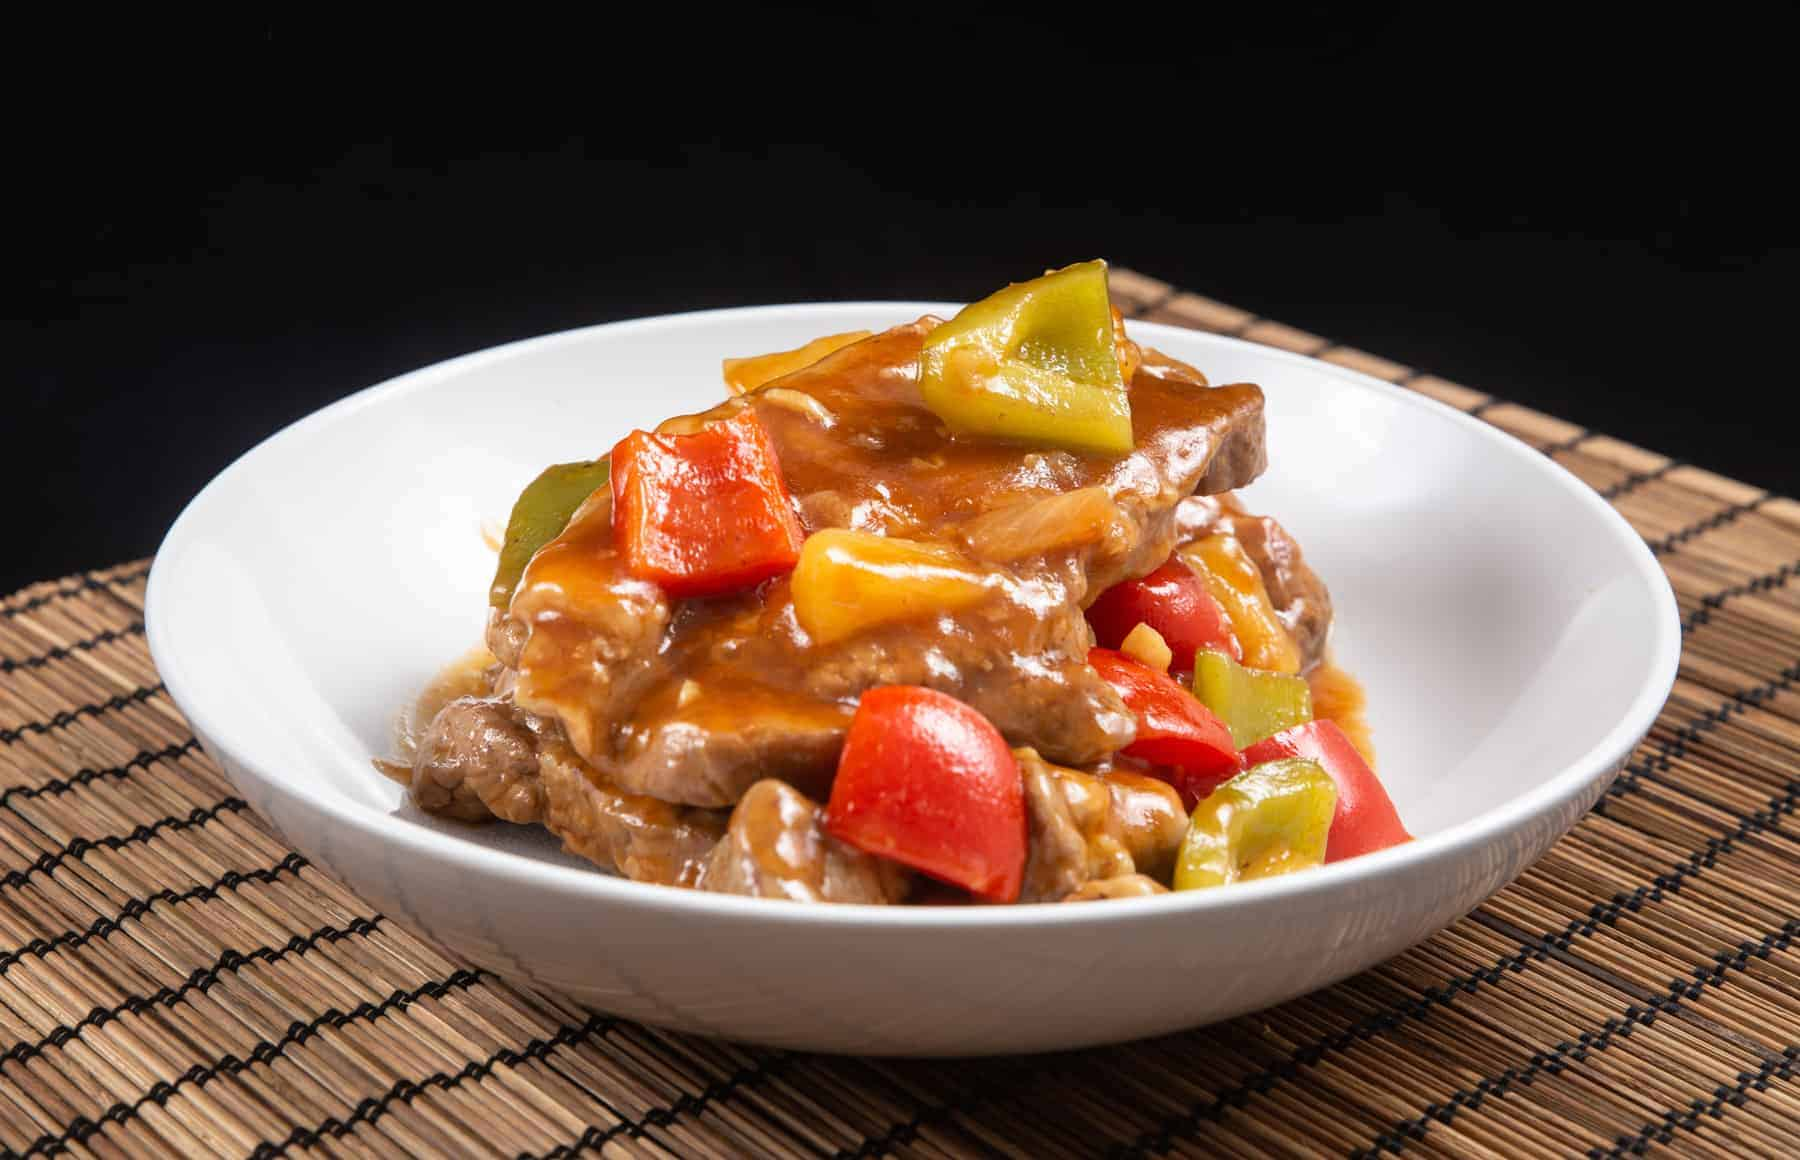 Instant Pot Sweet 'n Sour Pork Chops Recipe. Make this Top Selling Chinese Takeout: tender, juicy Pressure Cooker Pork Chops in a deliciously sweet and sour yummy sauce. Add this to your easy weeknight meal plan! #instantpot #instapot #instantpotrecipes #pressurecooker #recipes #chineserecipes #porkrecipes